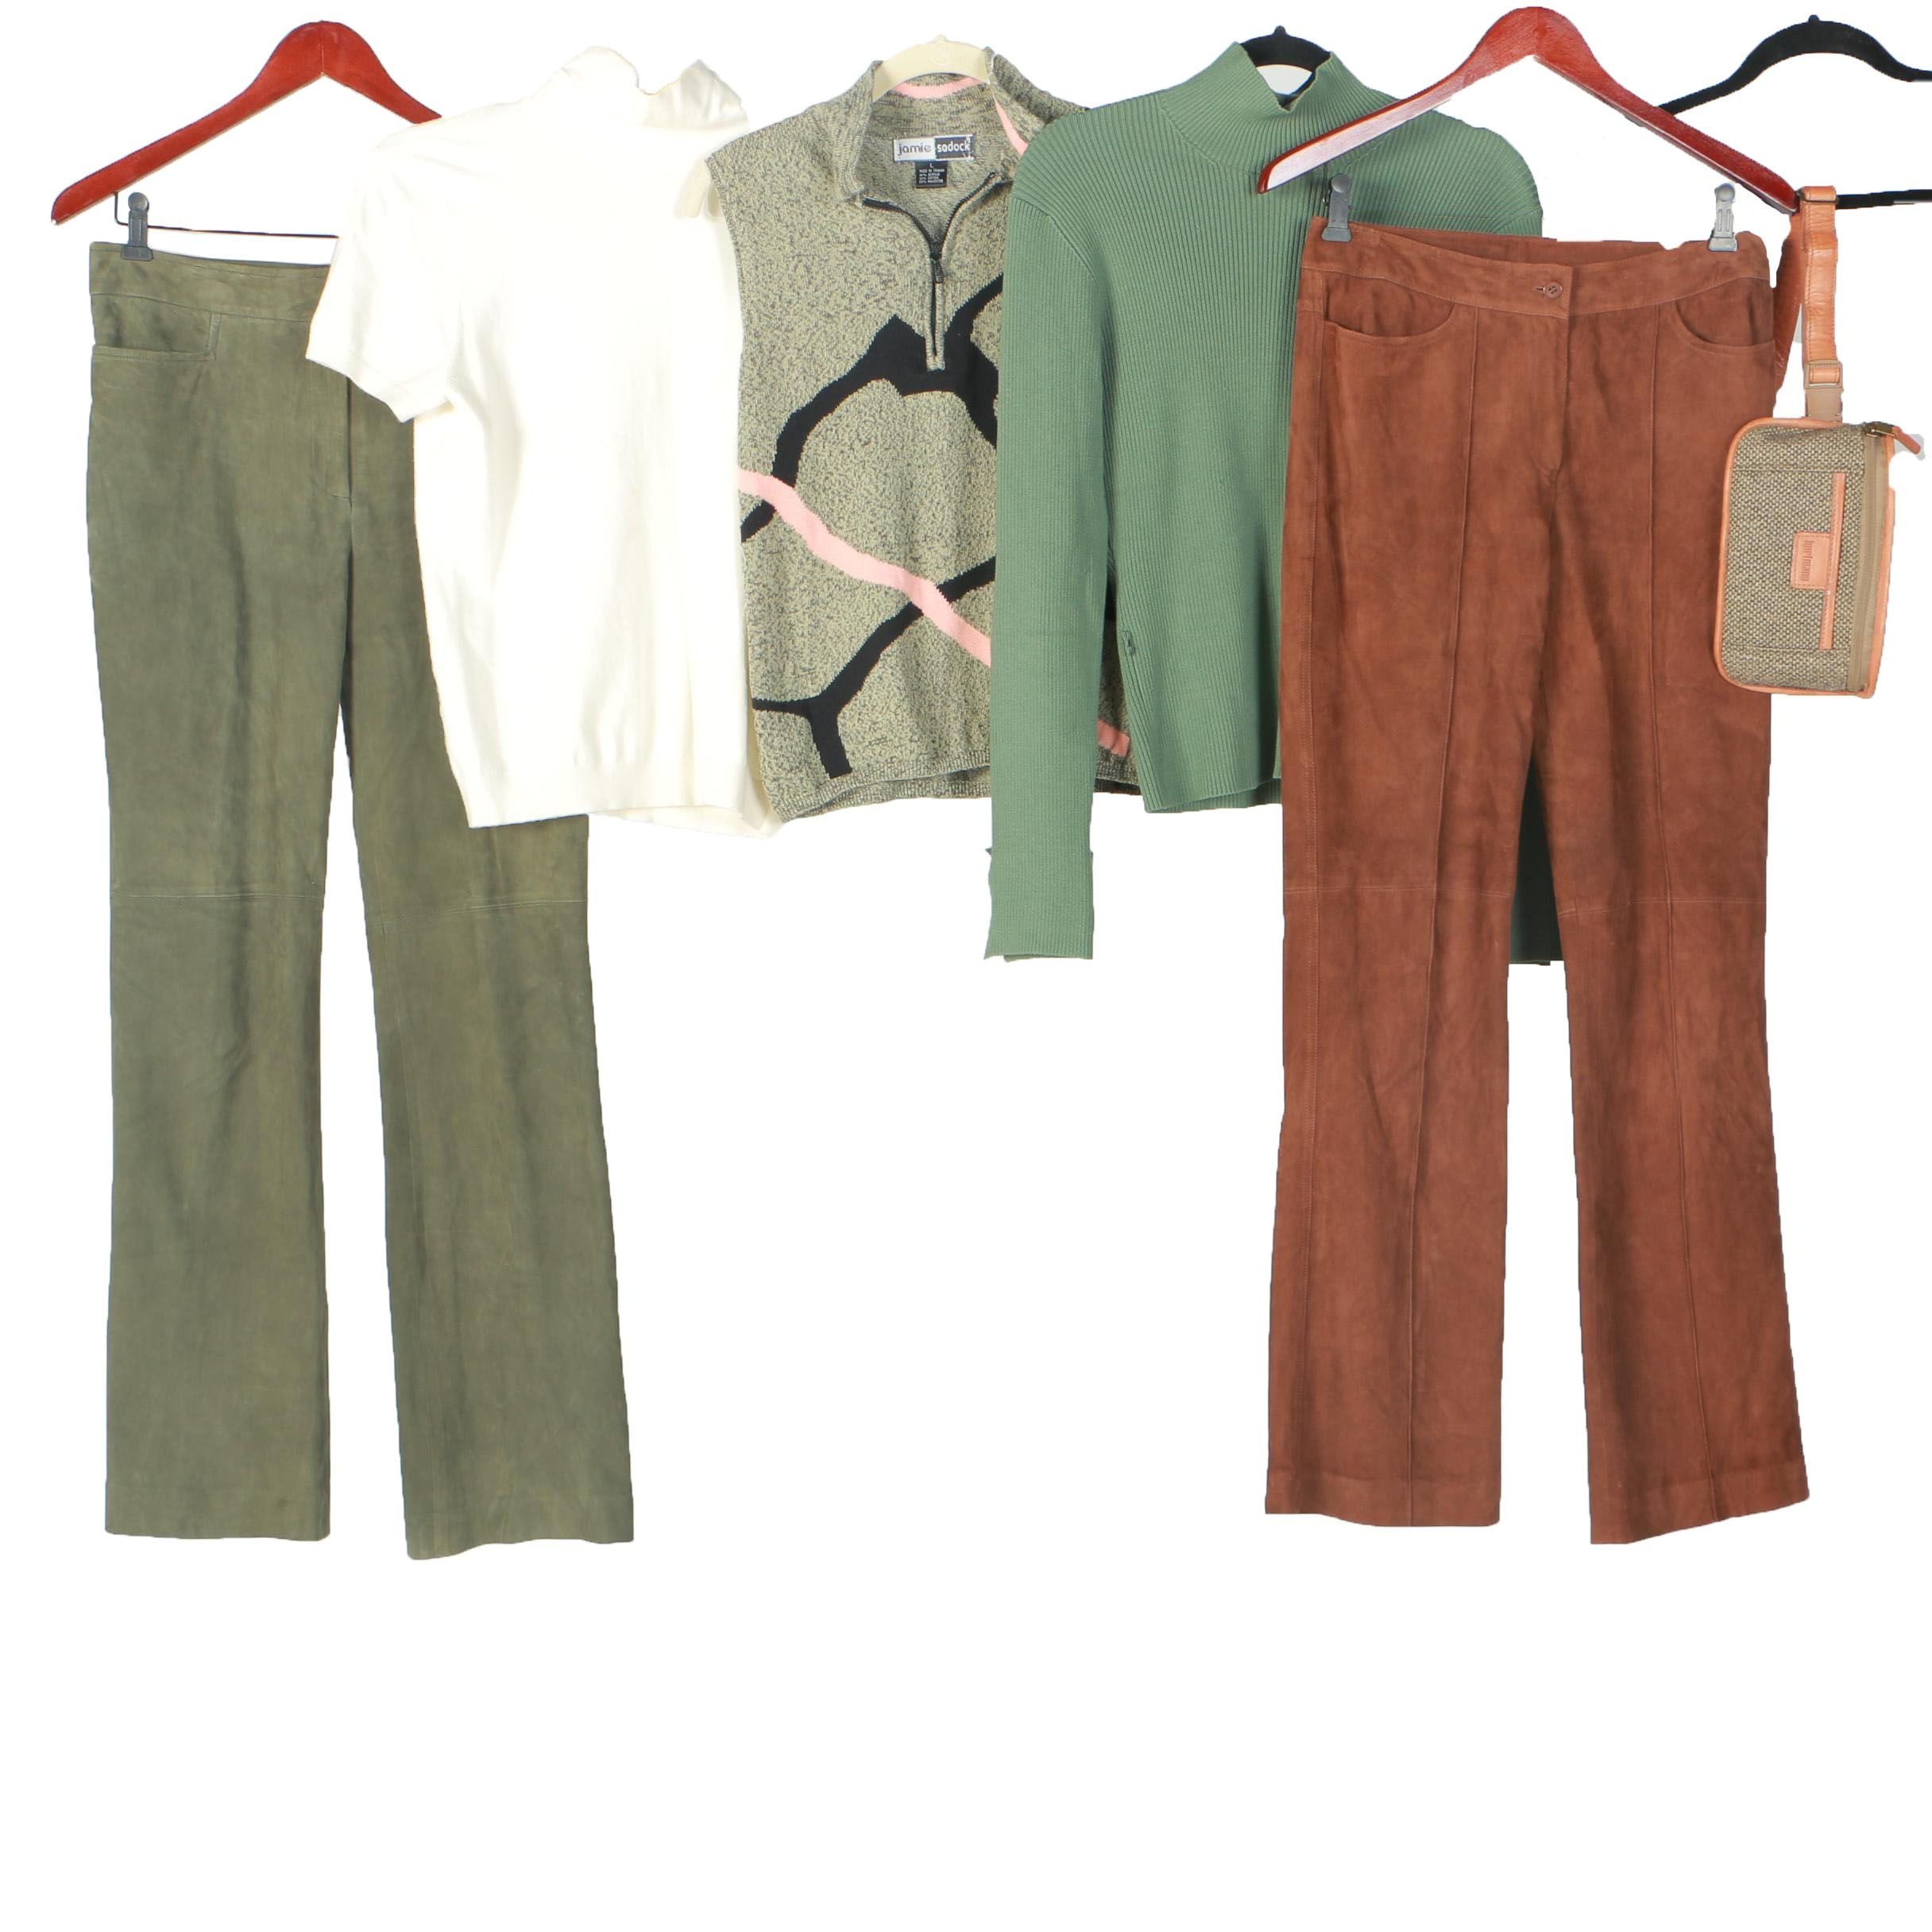 Women's Suede Pants, Tops and Handbag